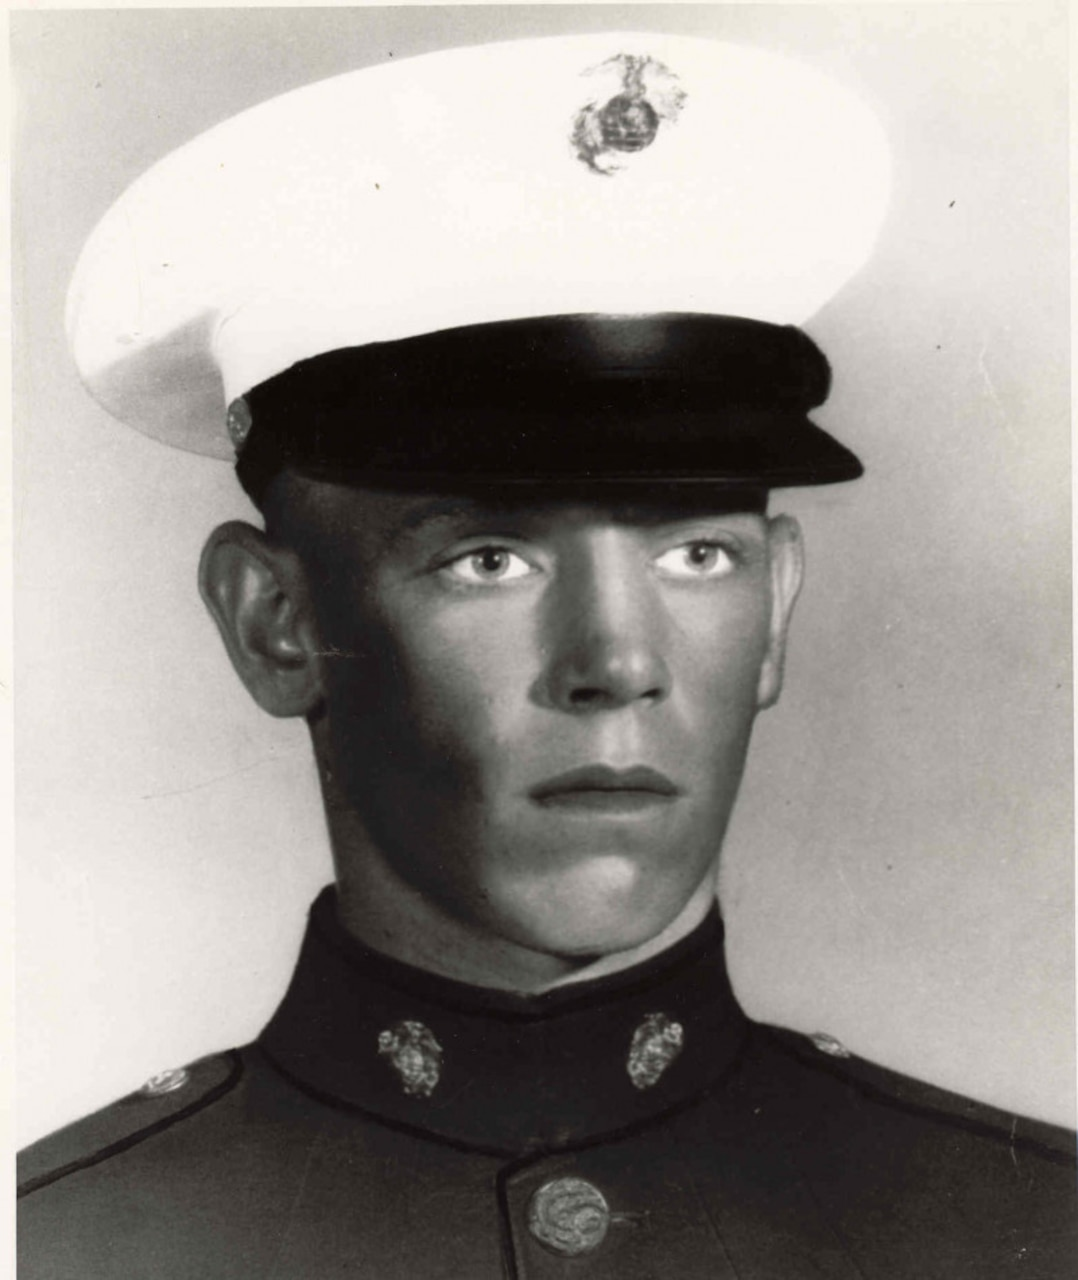 A young man in uniform and cap poses for a photograph.